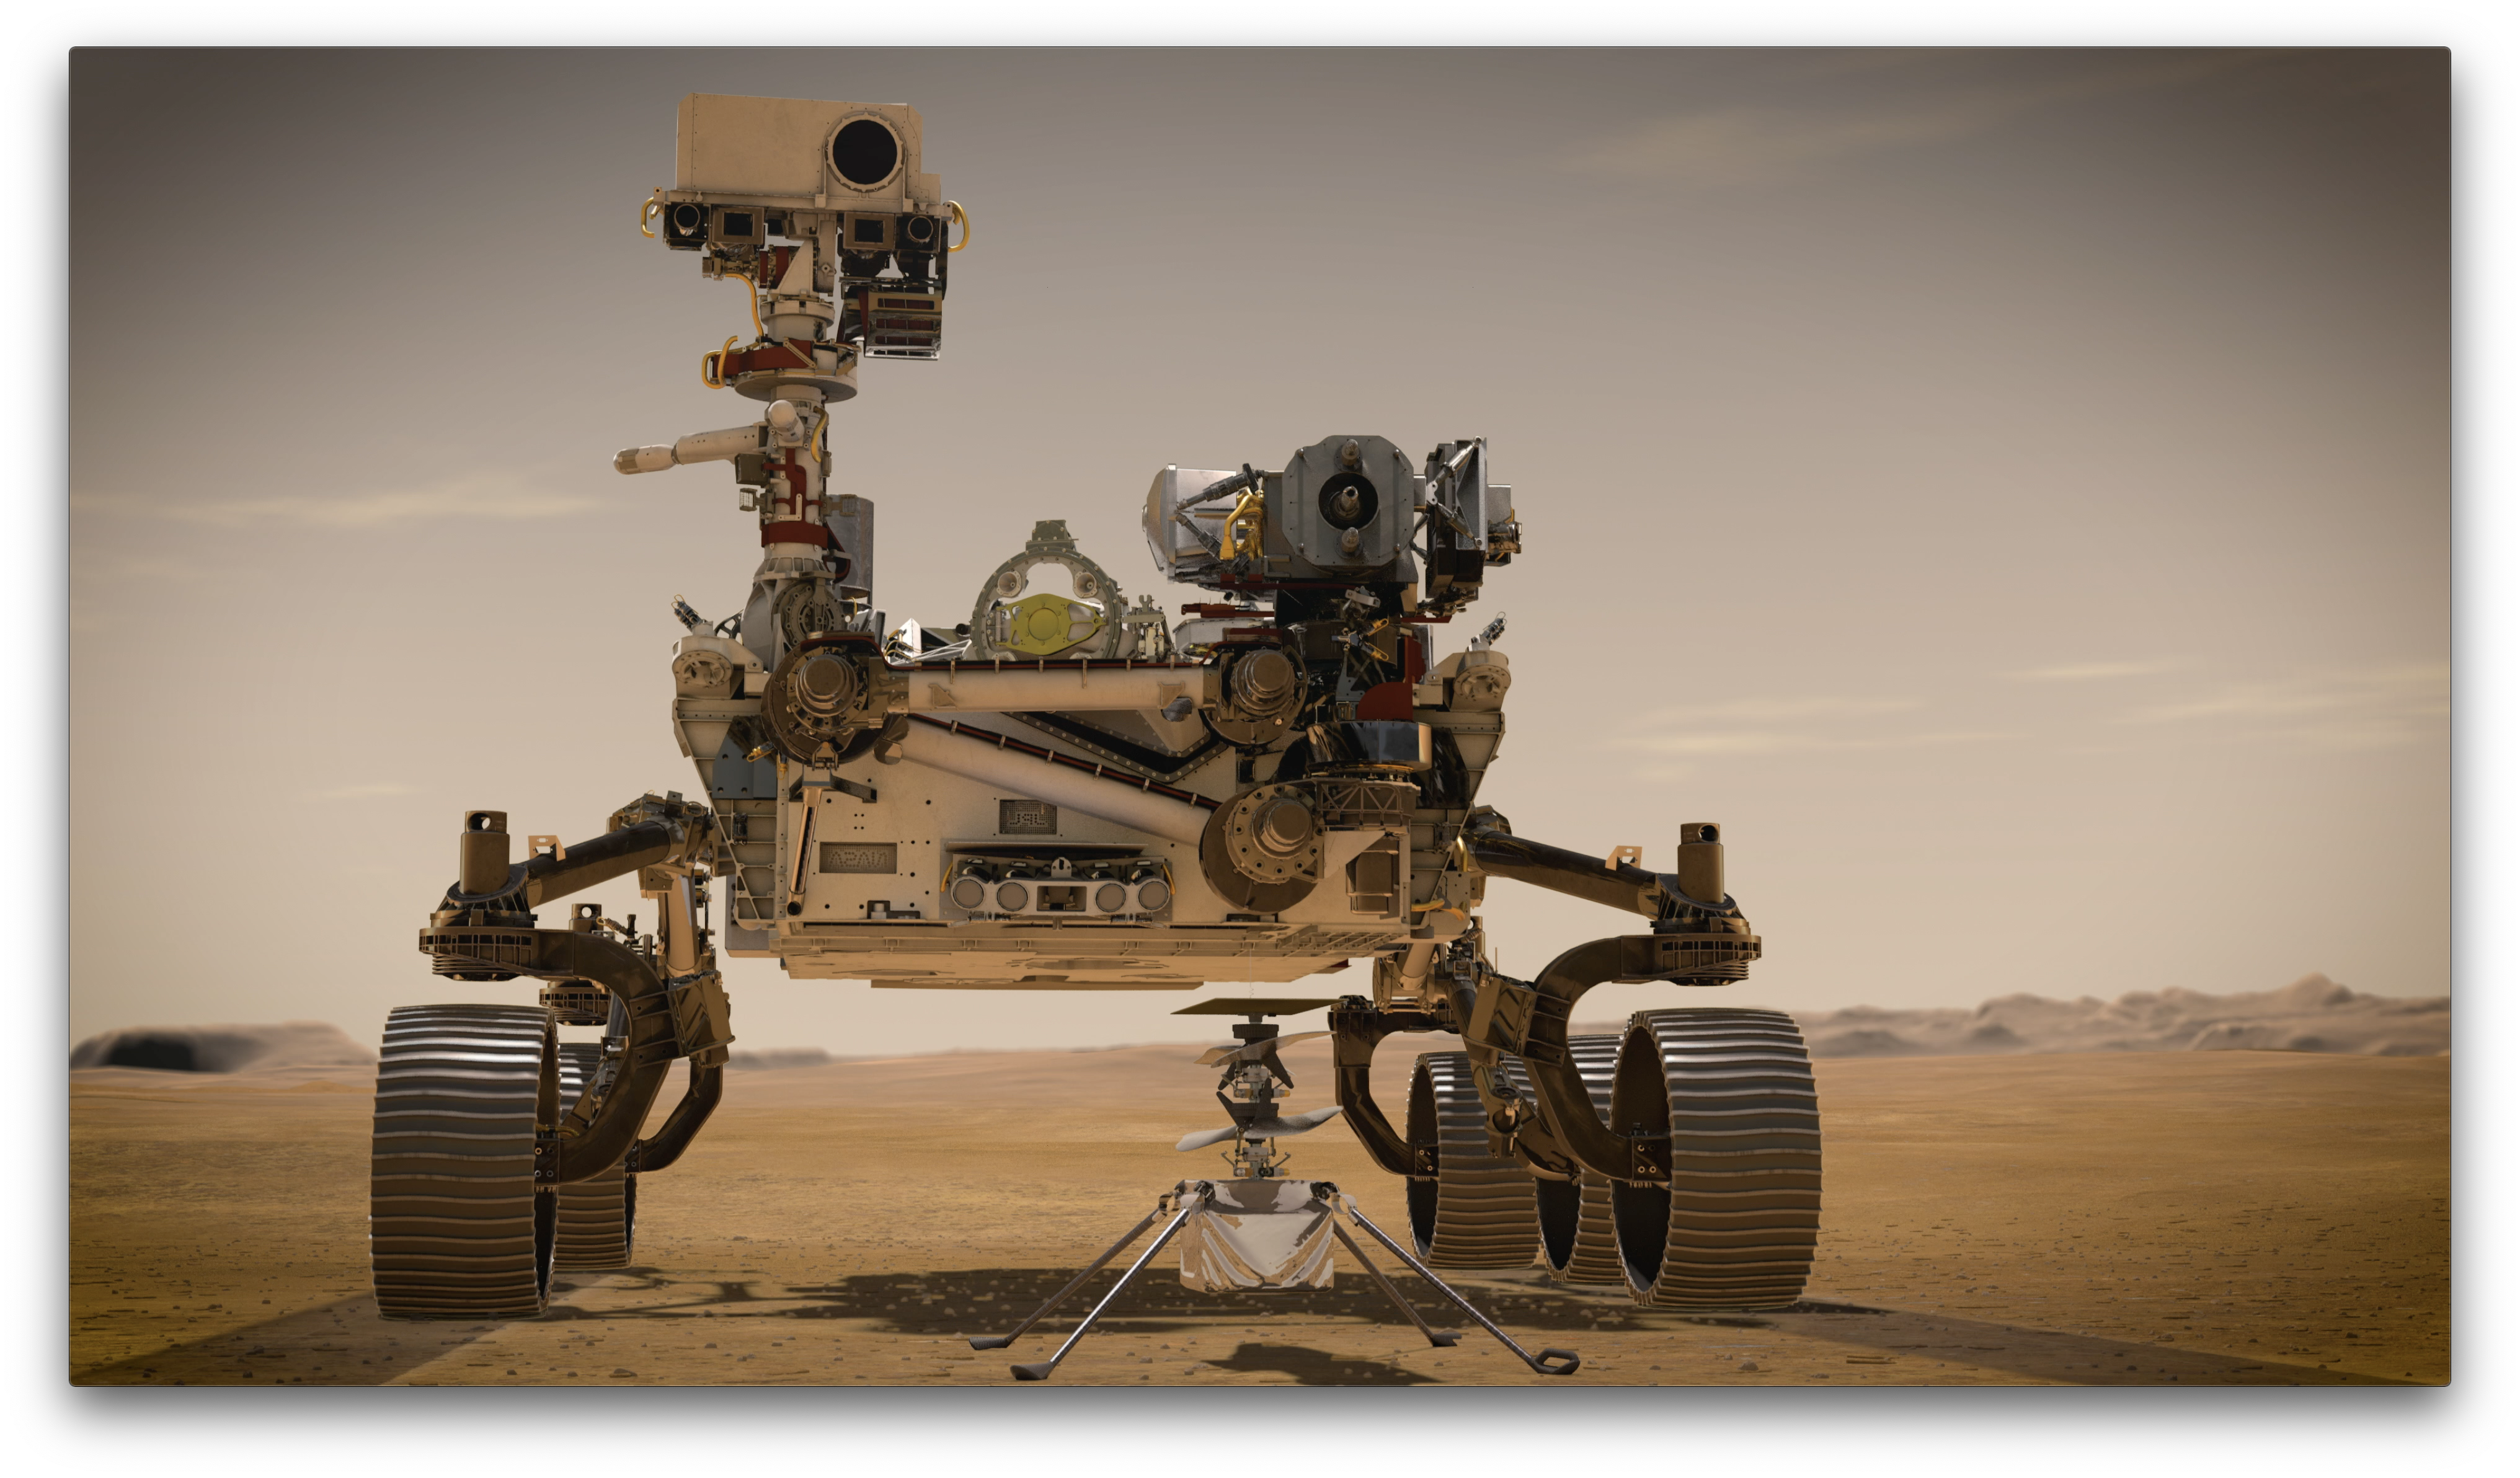 The Perseverance rover and the Ingenuity robotic helicopter.